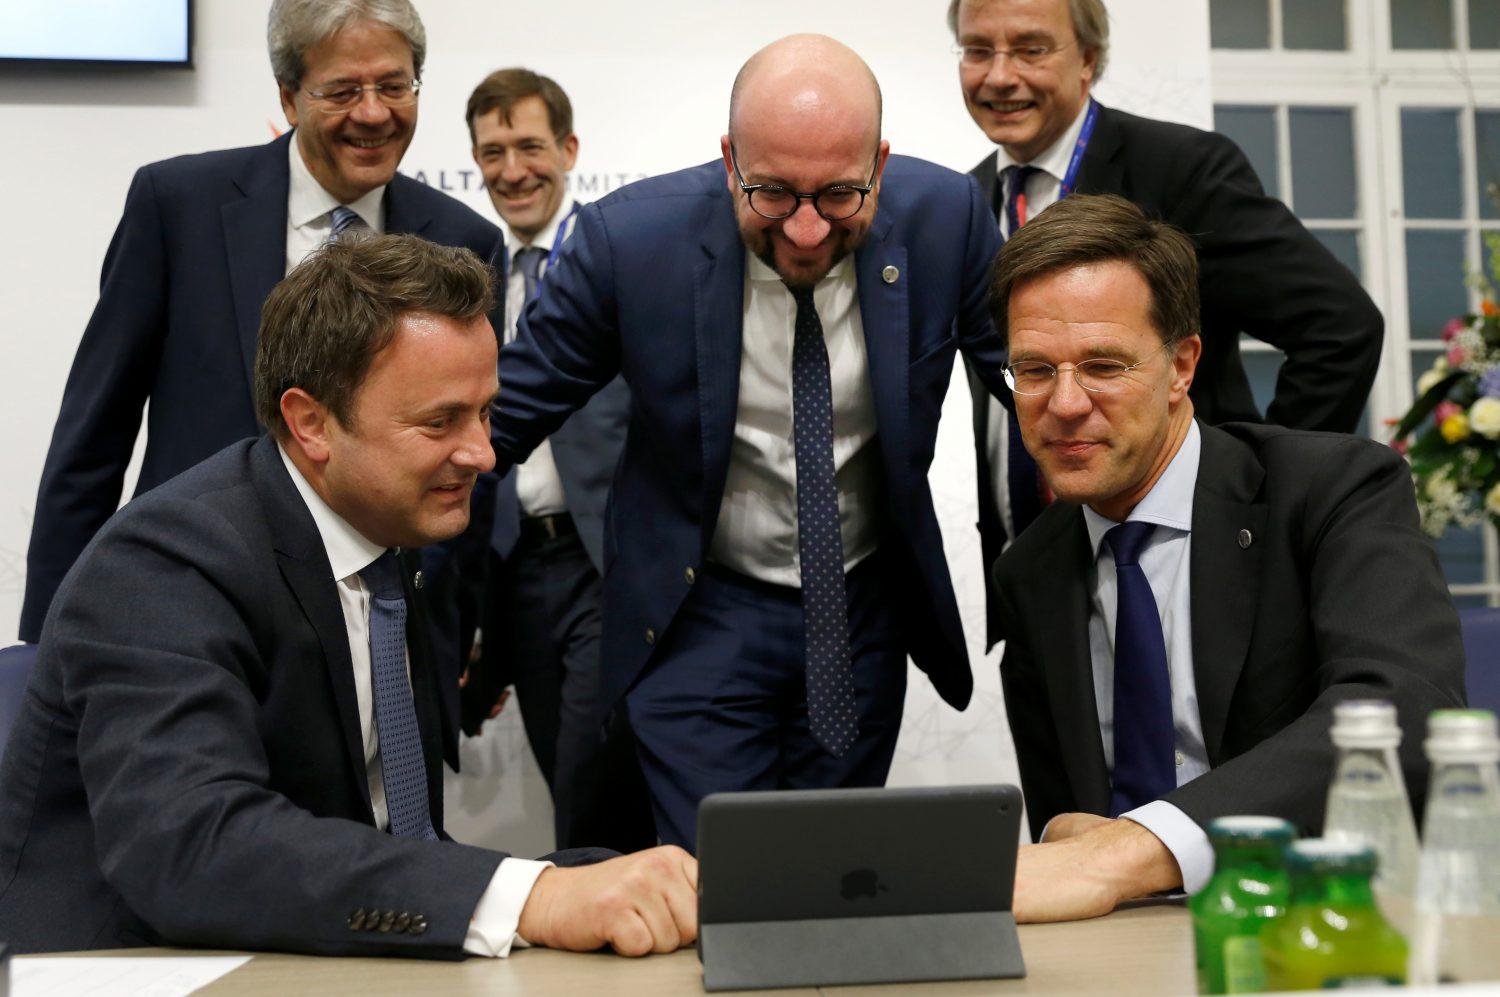 FILE PHOTO: EU leaders including Belgian Prime Minister Charles Michel (C), Netherlands Prime Minister Mark Rutte (R), Luxembourg Prime Minister Xavier Bettel (L) and Italian Prime Minister Paolo Gentiloni (rear left) gather around a computer screen at the European Union leaders summit in Malta, February 3, 2017. REUTERS/Darrin Zammit-Lupi/File Photo